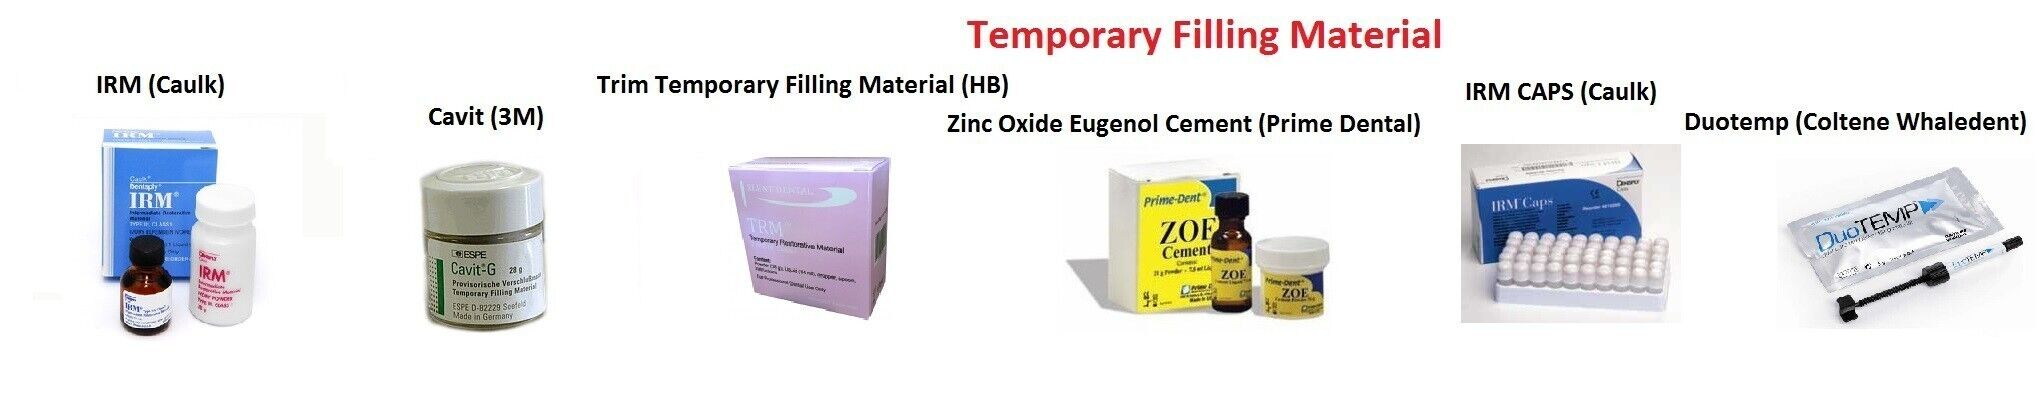 Temporary Filling Material